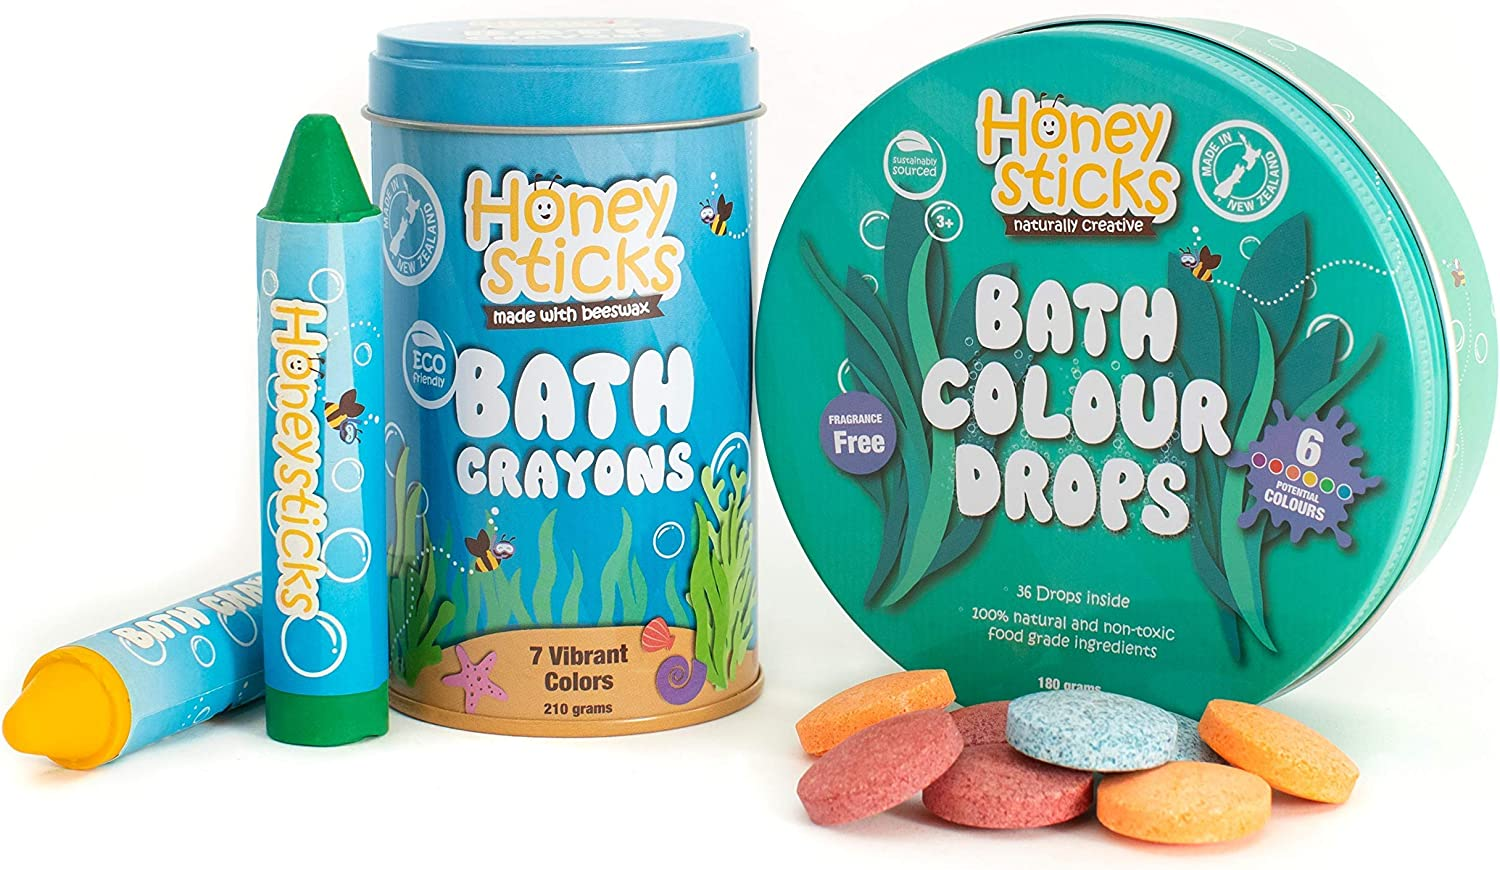 Honeysticks Bath Pack - Bath Color Tablets & Bath Crayons for Kids - Made with Natural & Food Grade Ingredients - Fragrance Free and Non Irritating - Washable & Easy Clean Up